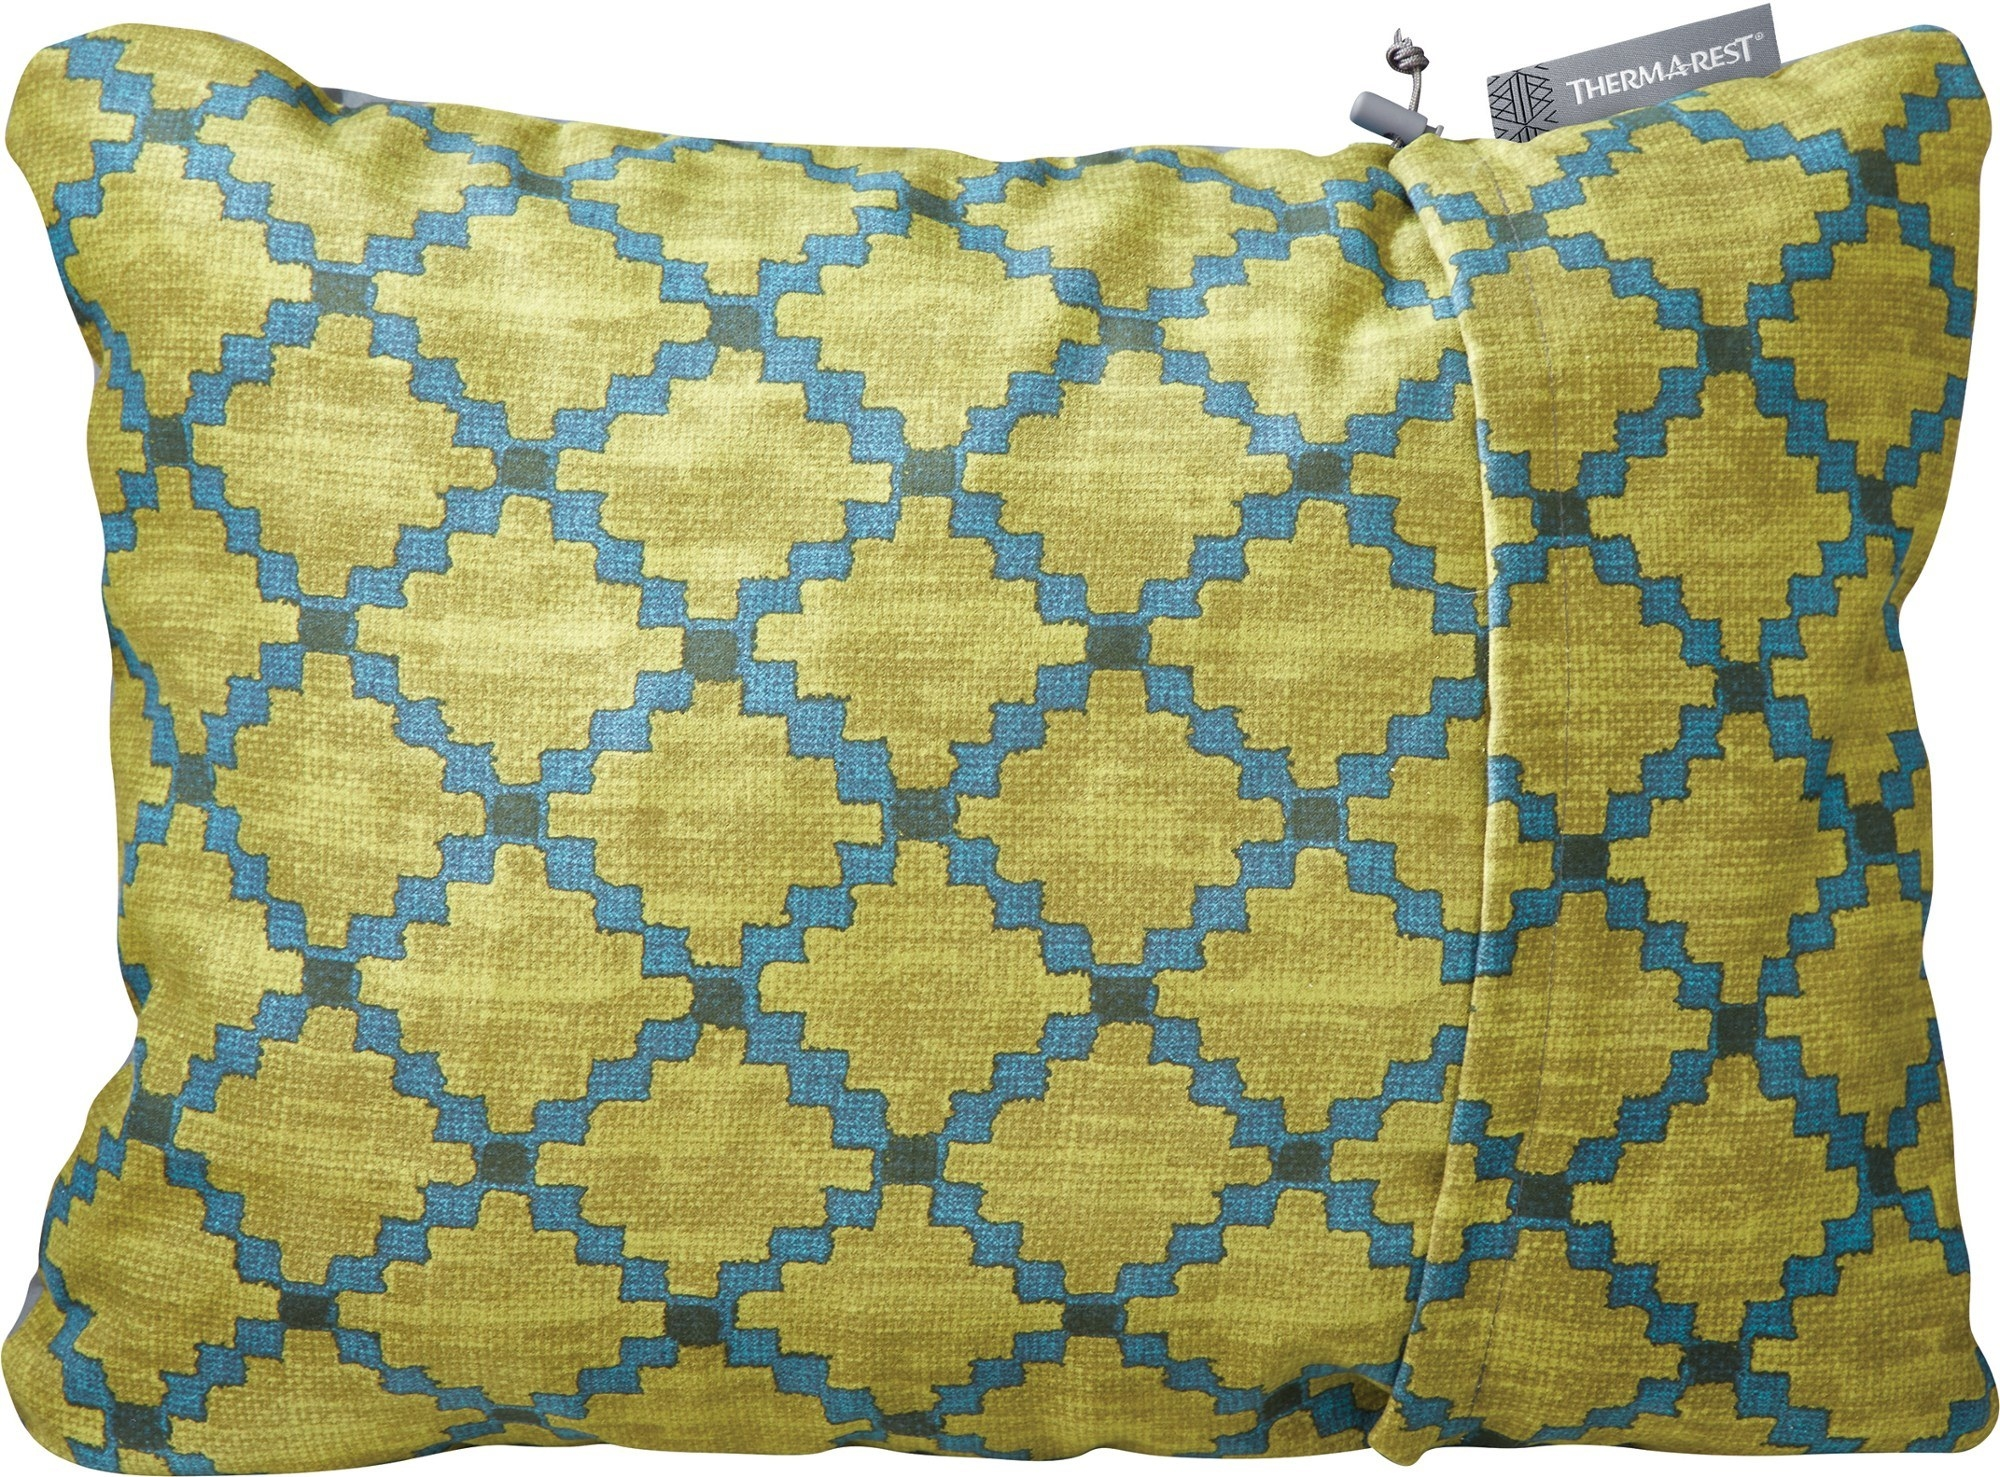 small green and blue patterned pillow